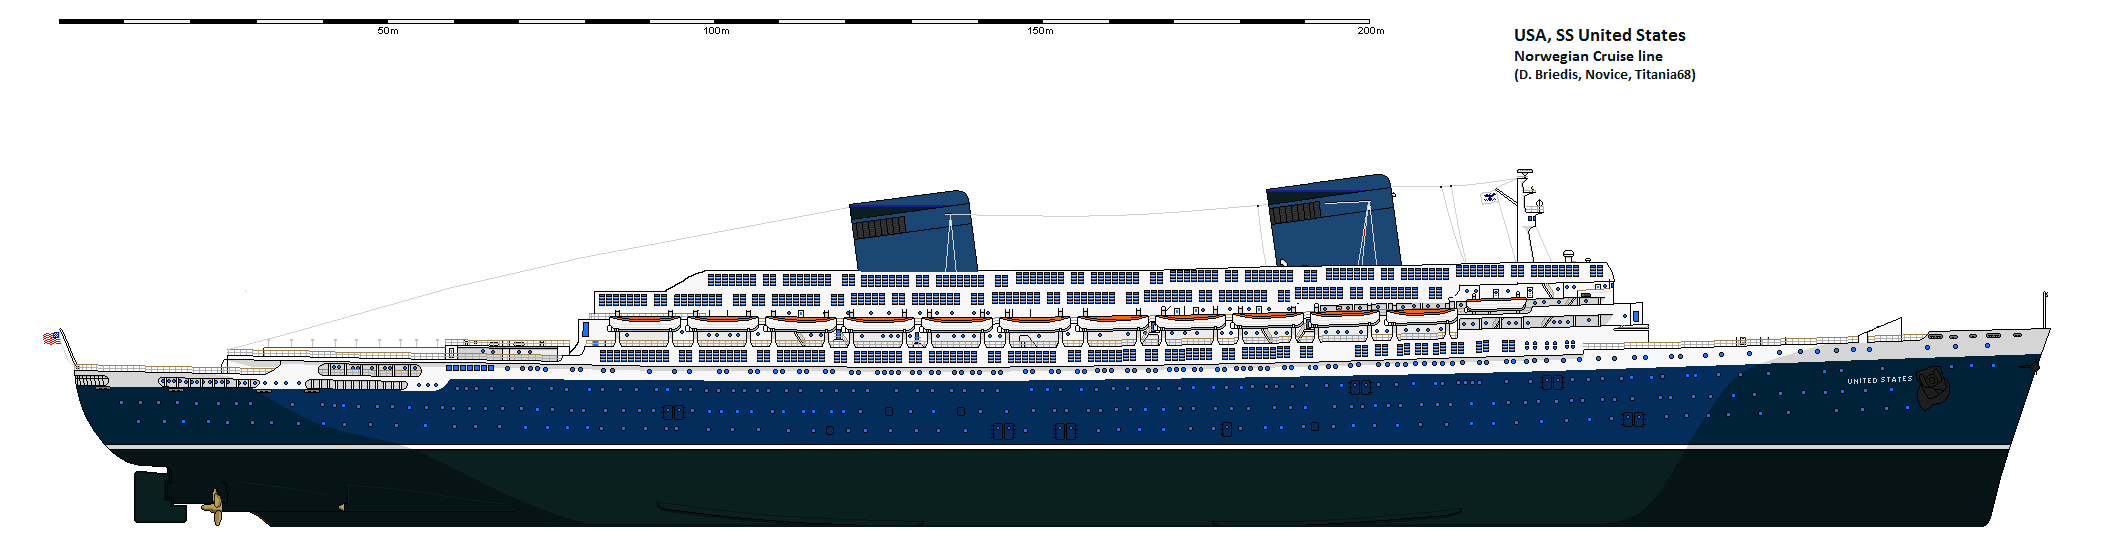 The S.S. United States design for NCL America